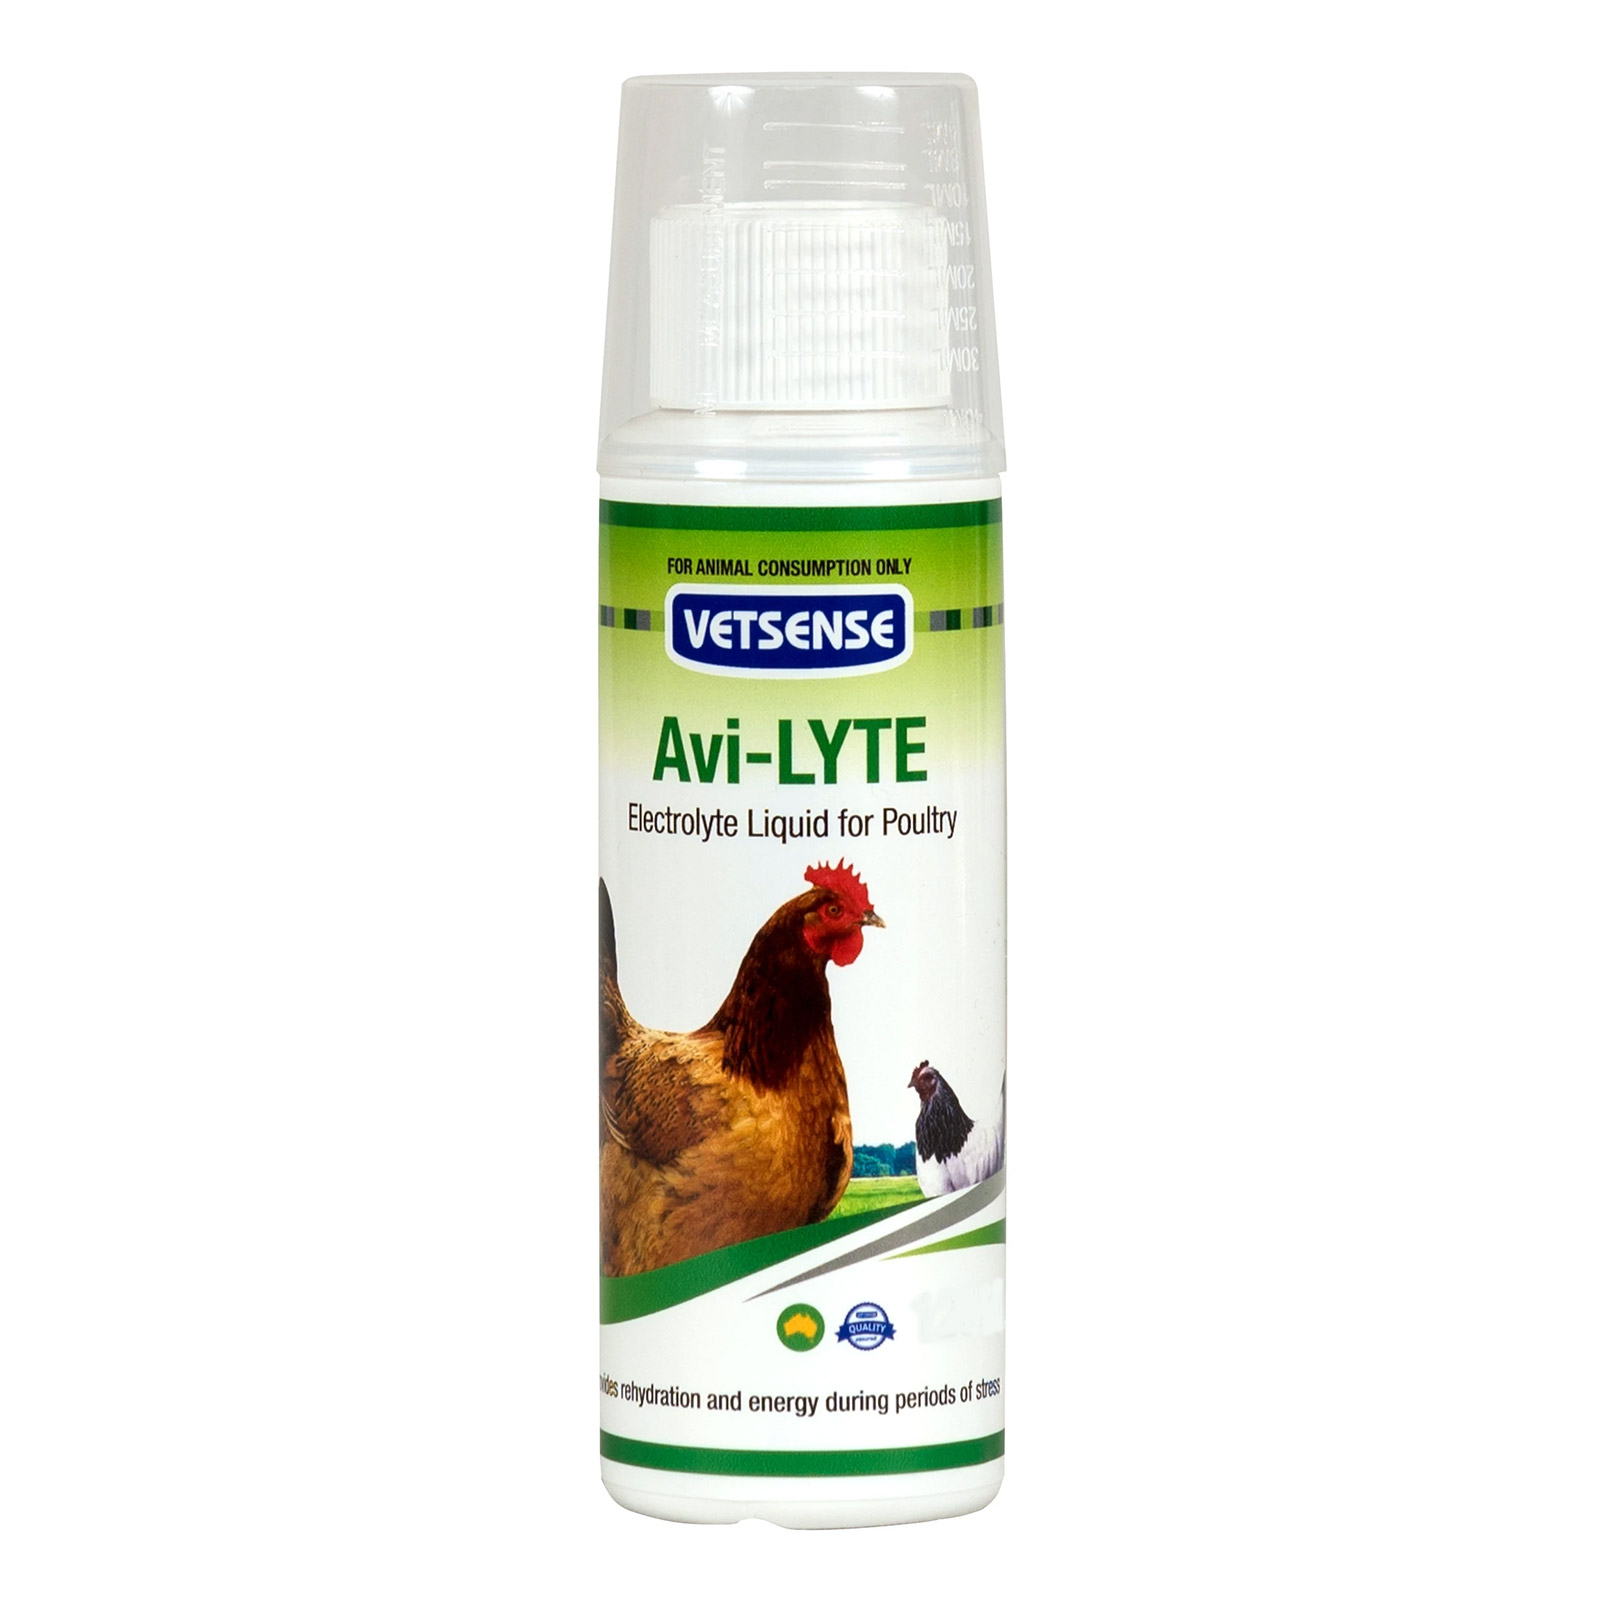 VetSense Avi-Lyte for Poultry